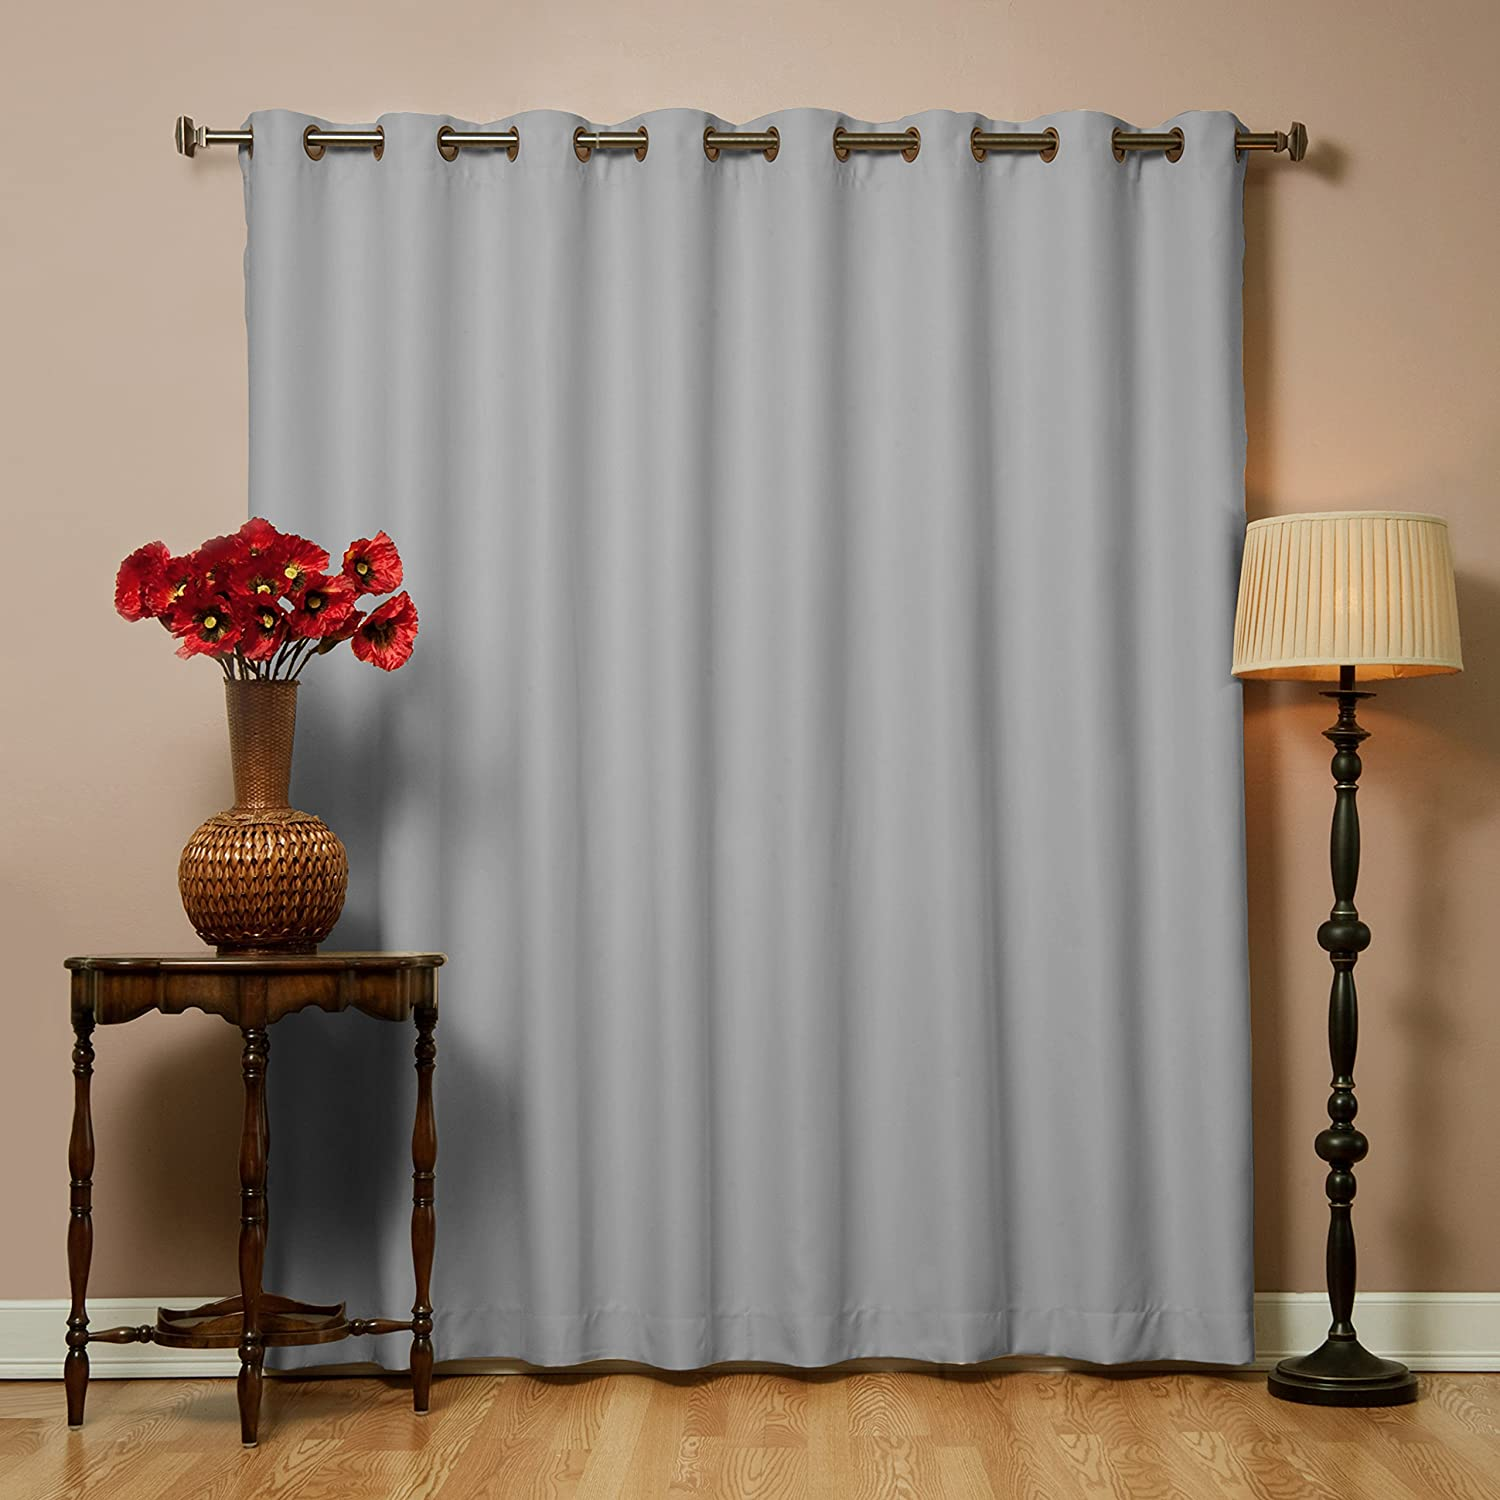 "Best Home Fashion Wide Width Thermal Insulated Blackout Curtain - Antique Bronze Grommet Top - Grey - 100"" W x 96"" L - (1 Panel)"